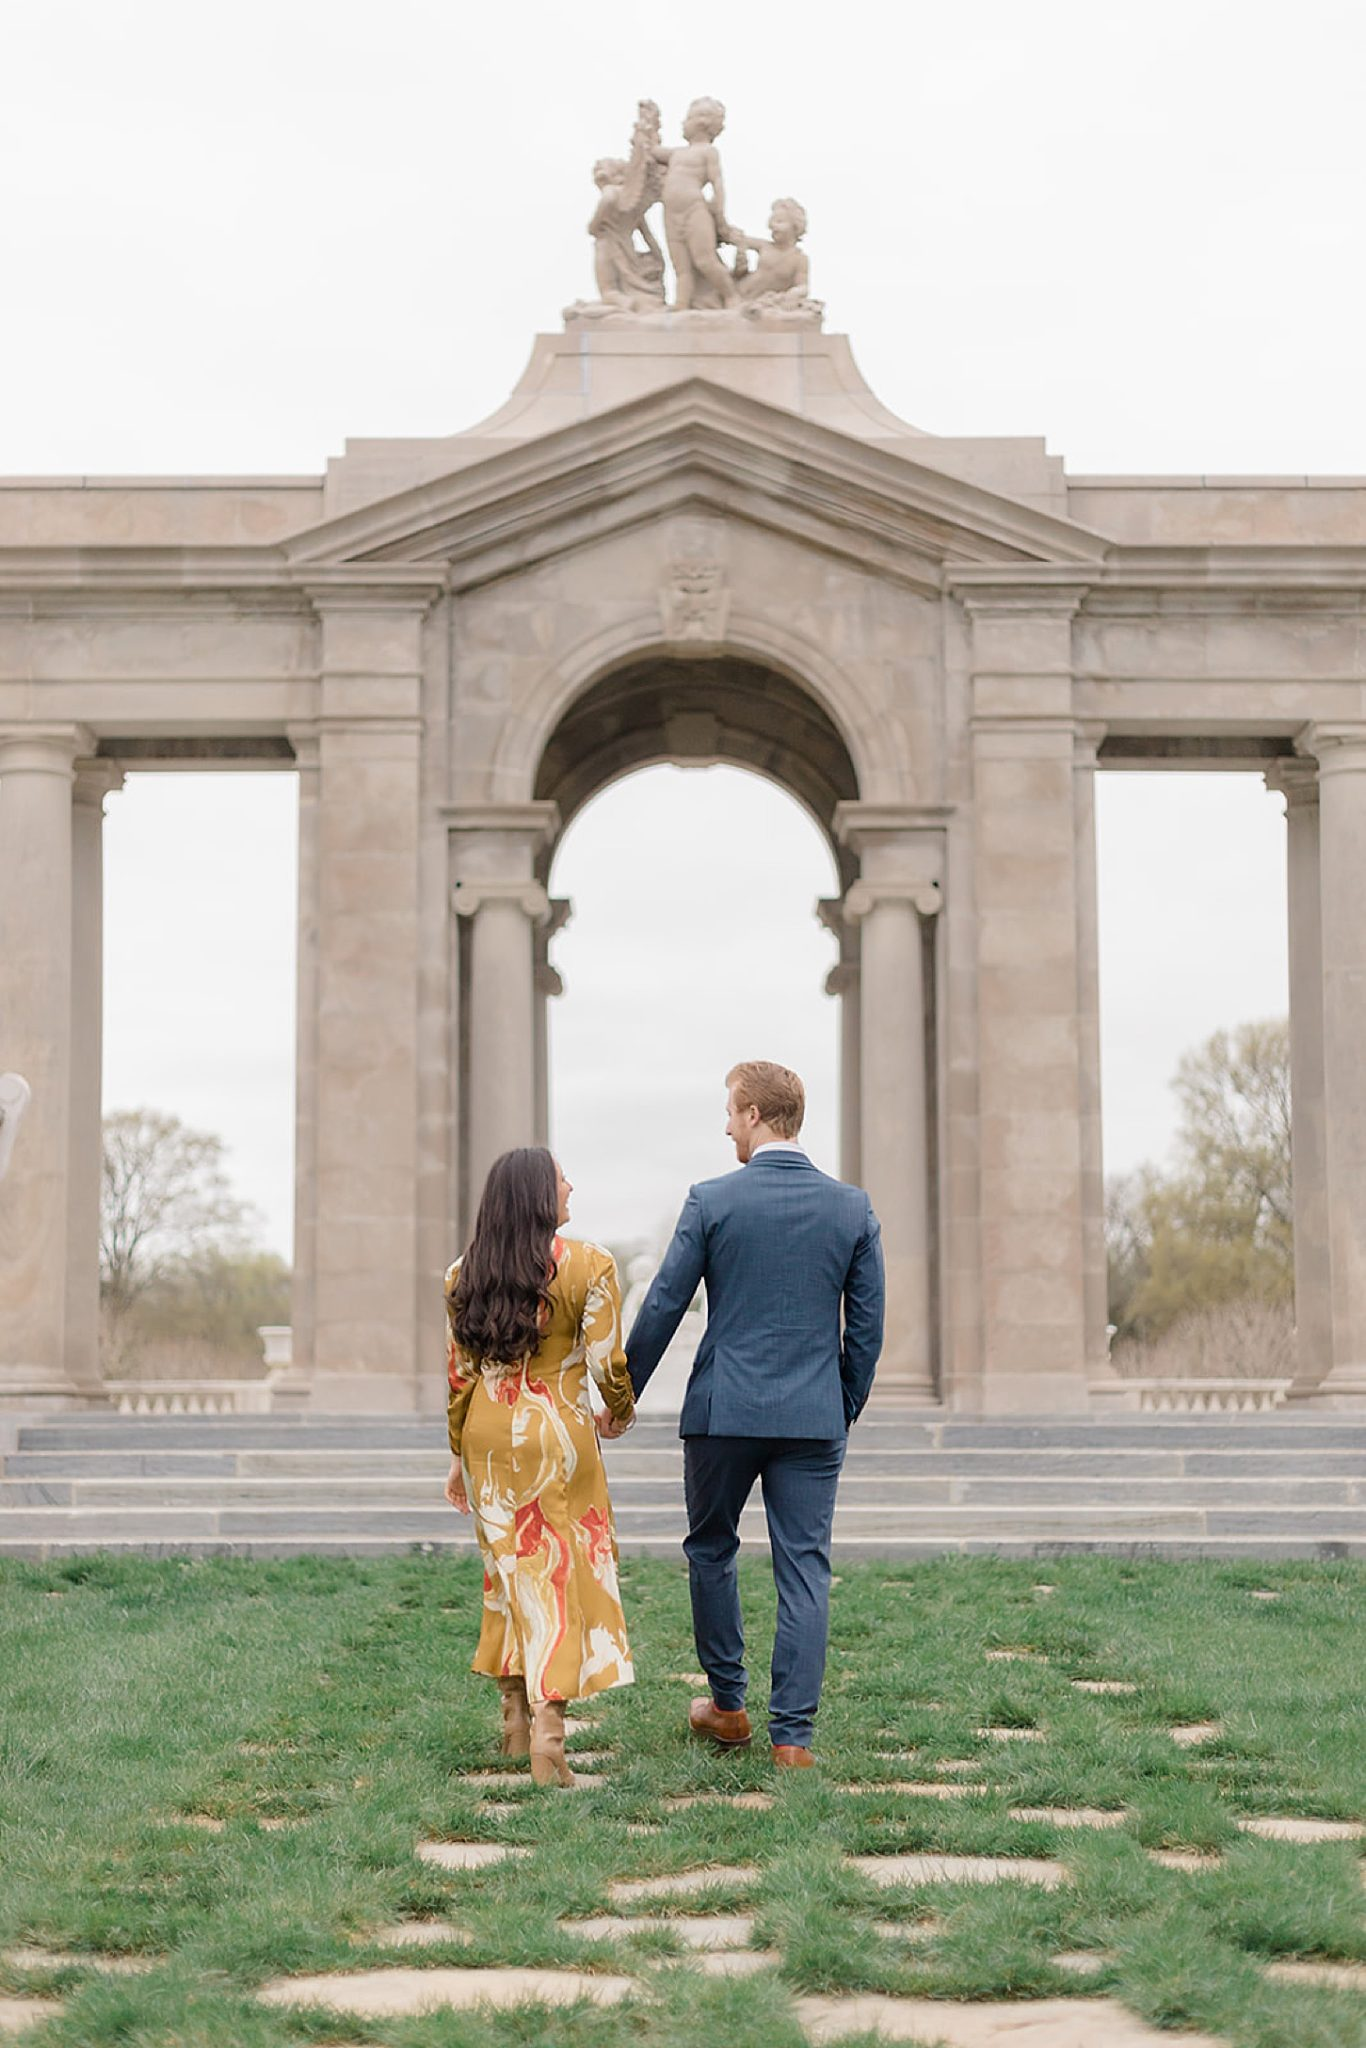 Alfred I. DuPont Hospital for Children Mansion Grounds Engagement Photography by Magdalena Studios 0015 scaled